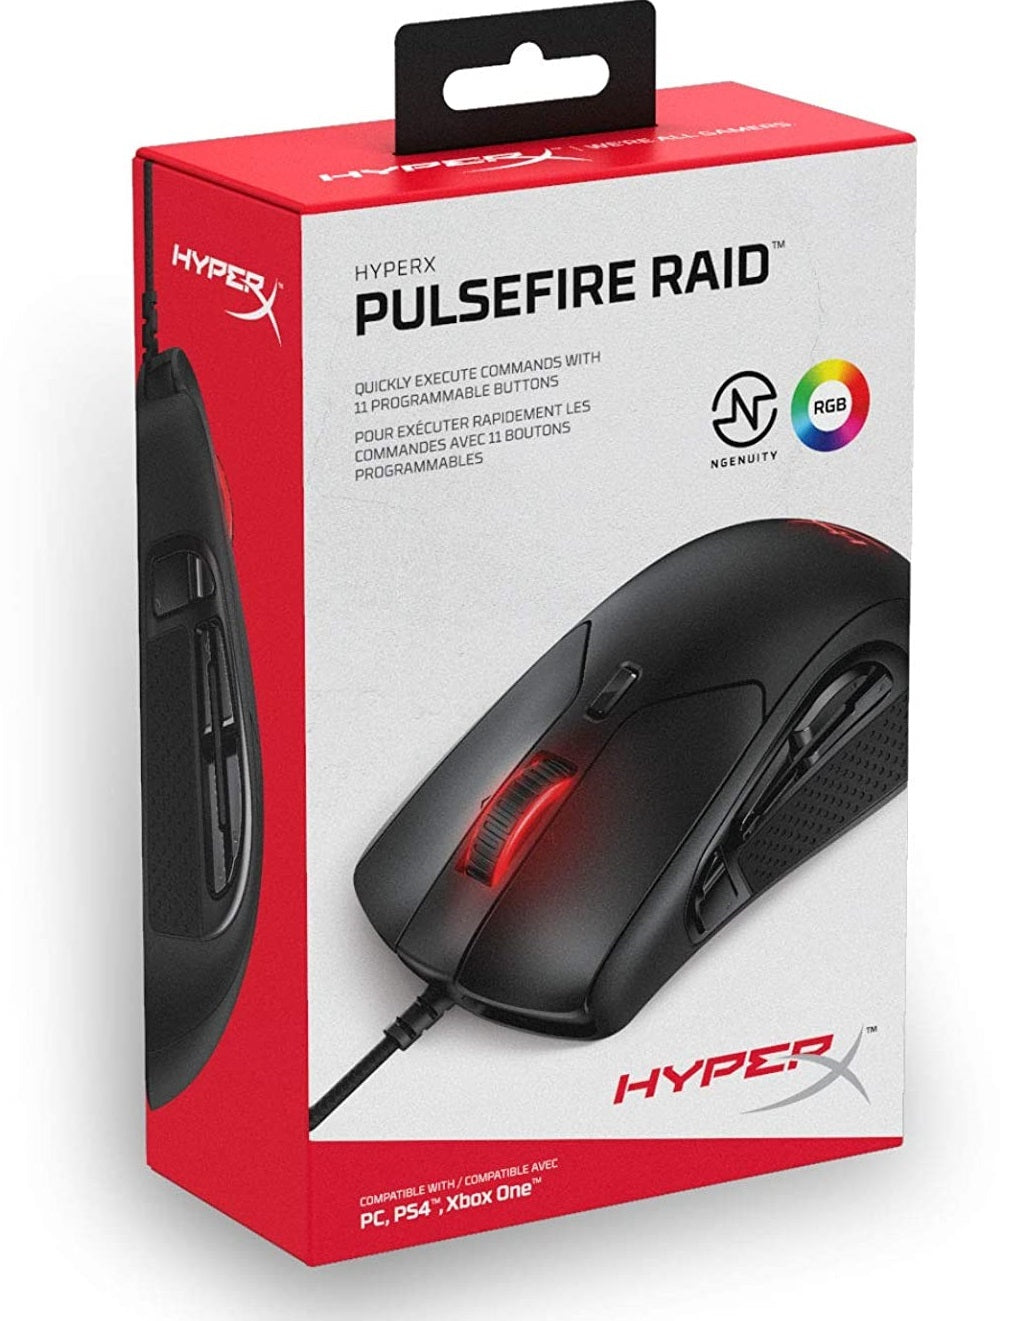 HyperX Pulsefire Raid Gaming Mouse - PC Games